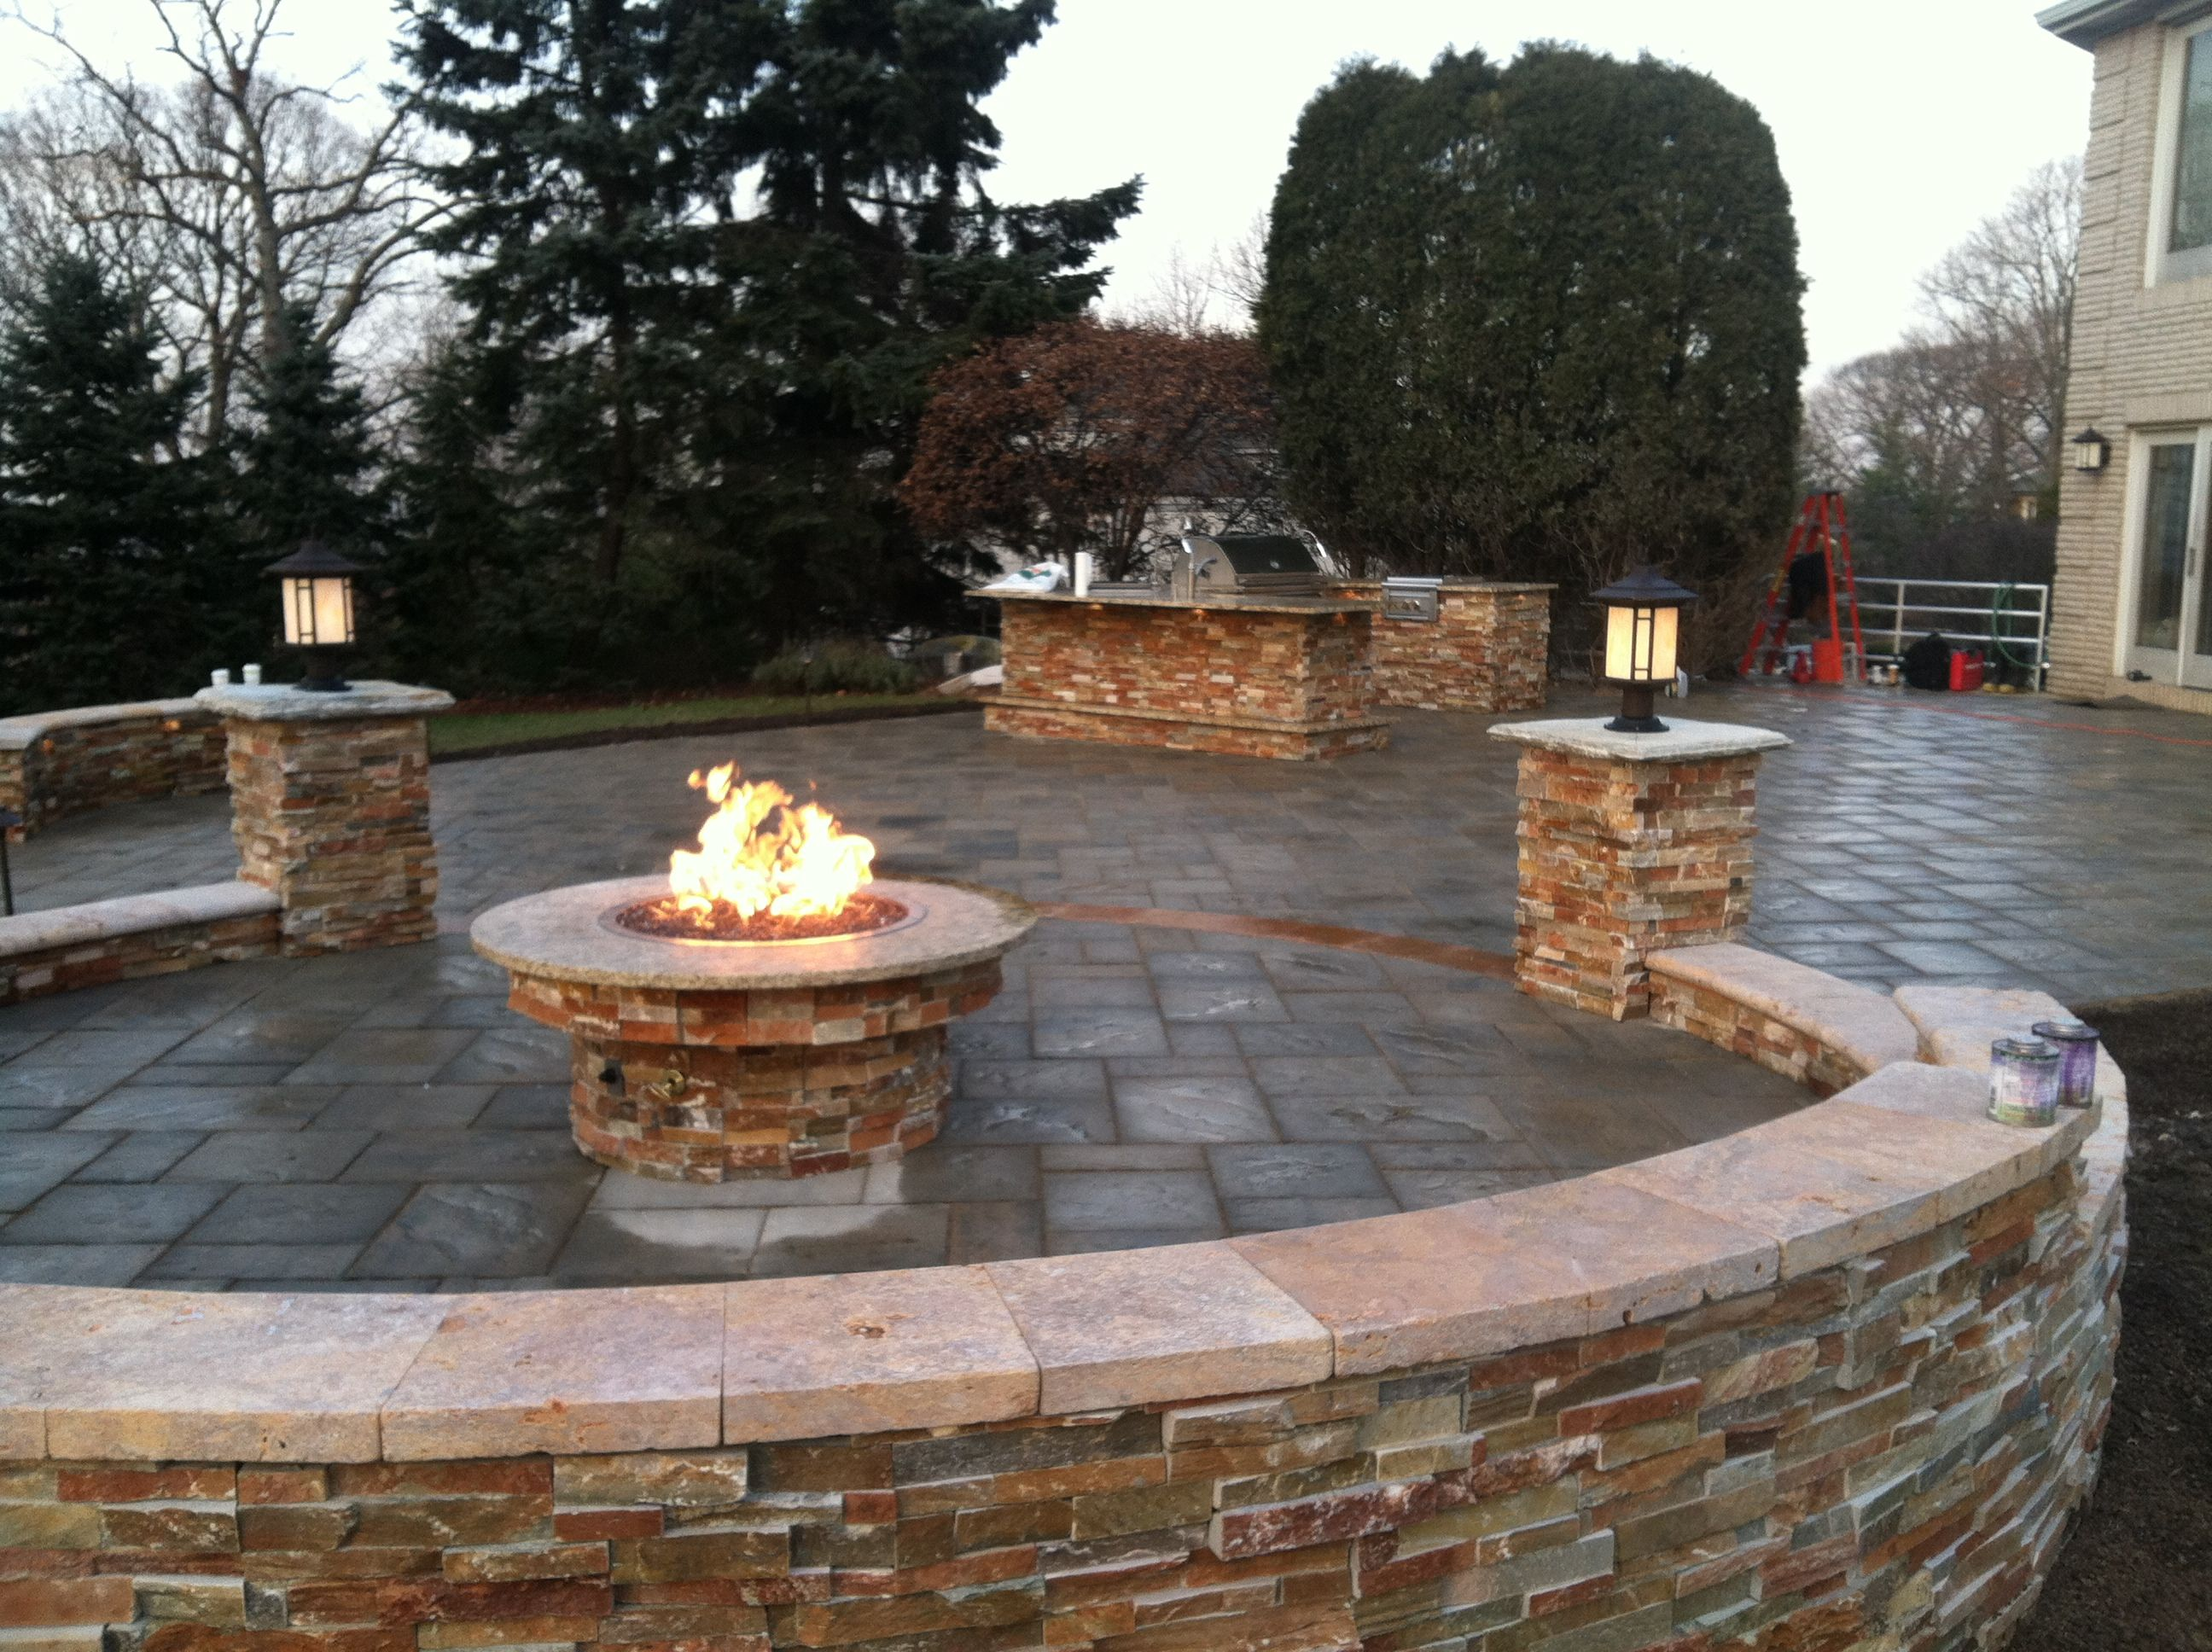 Awesome Unilock Pavers For Your Outdoor Patio Ideas: Cool ... on Unilock Patio Ideas id=36660